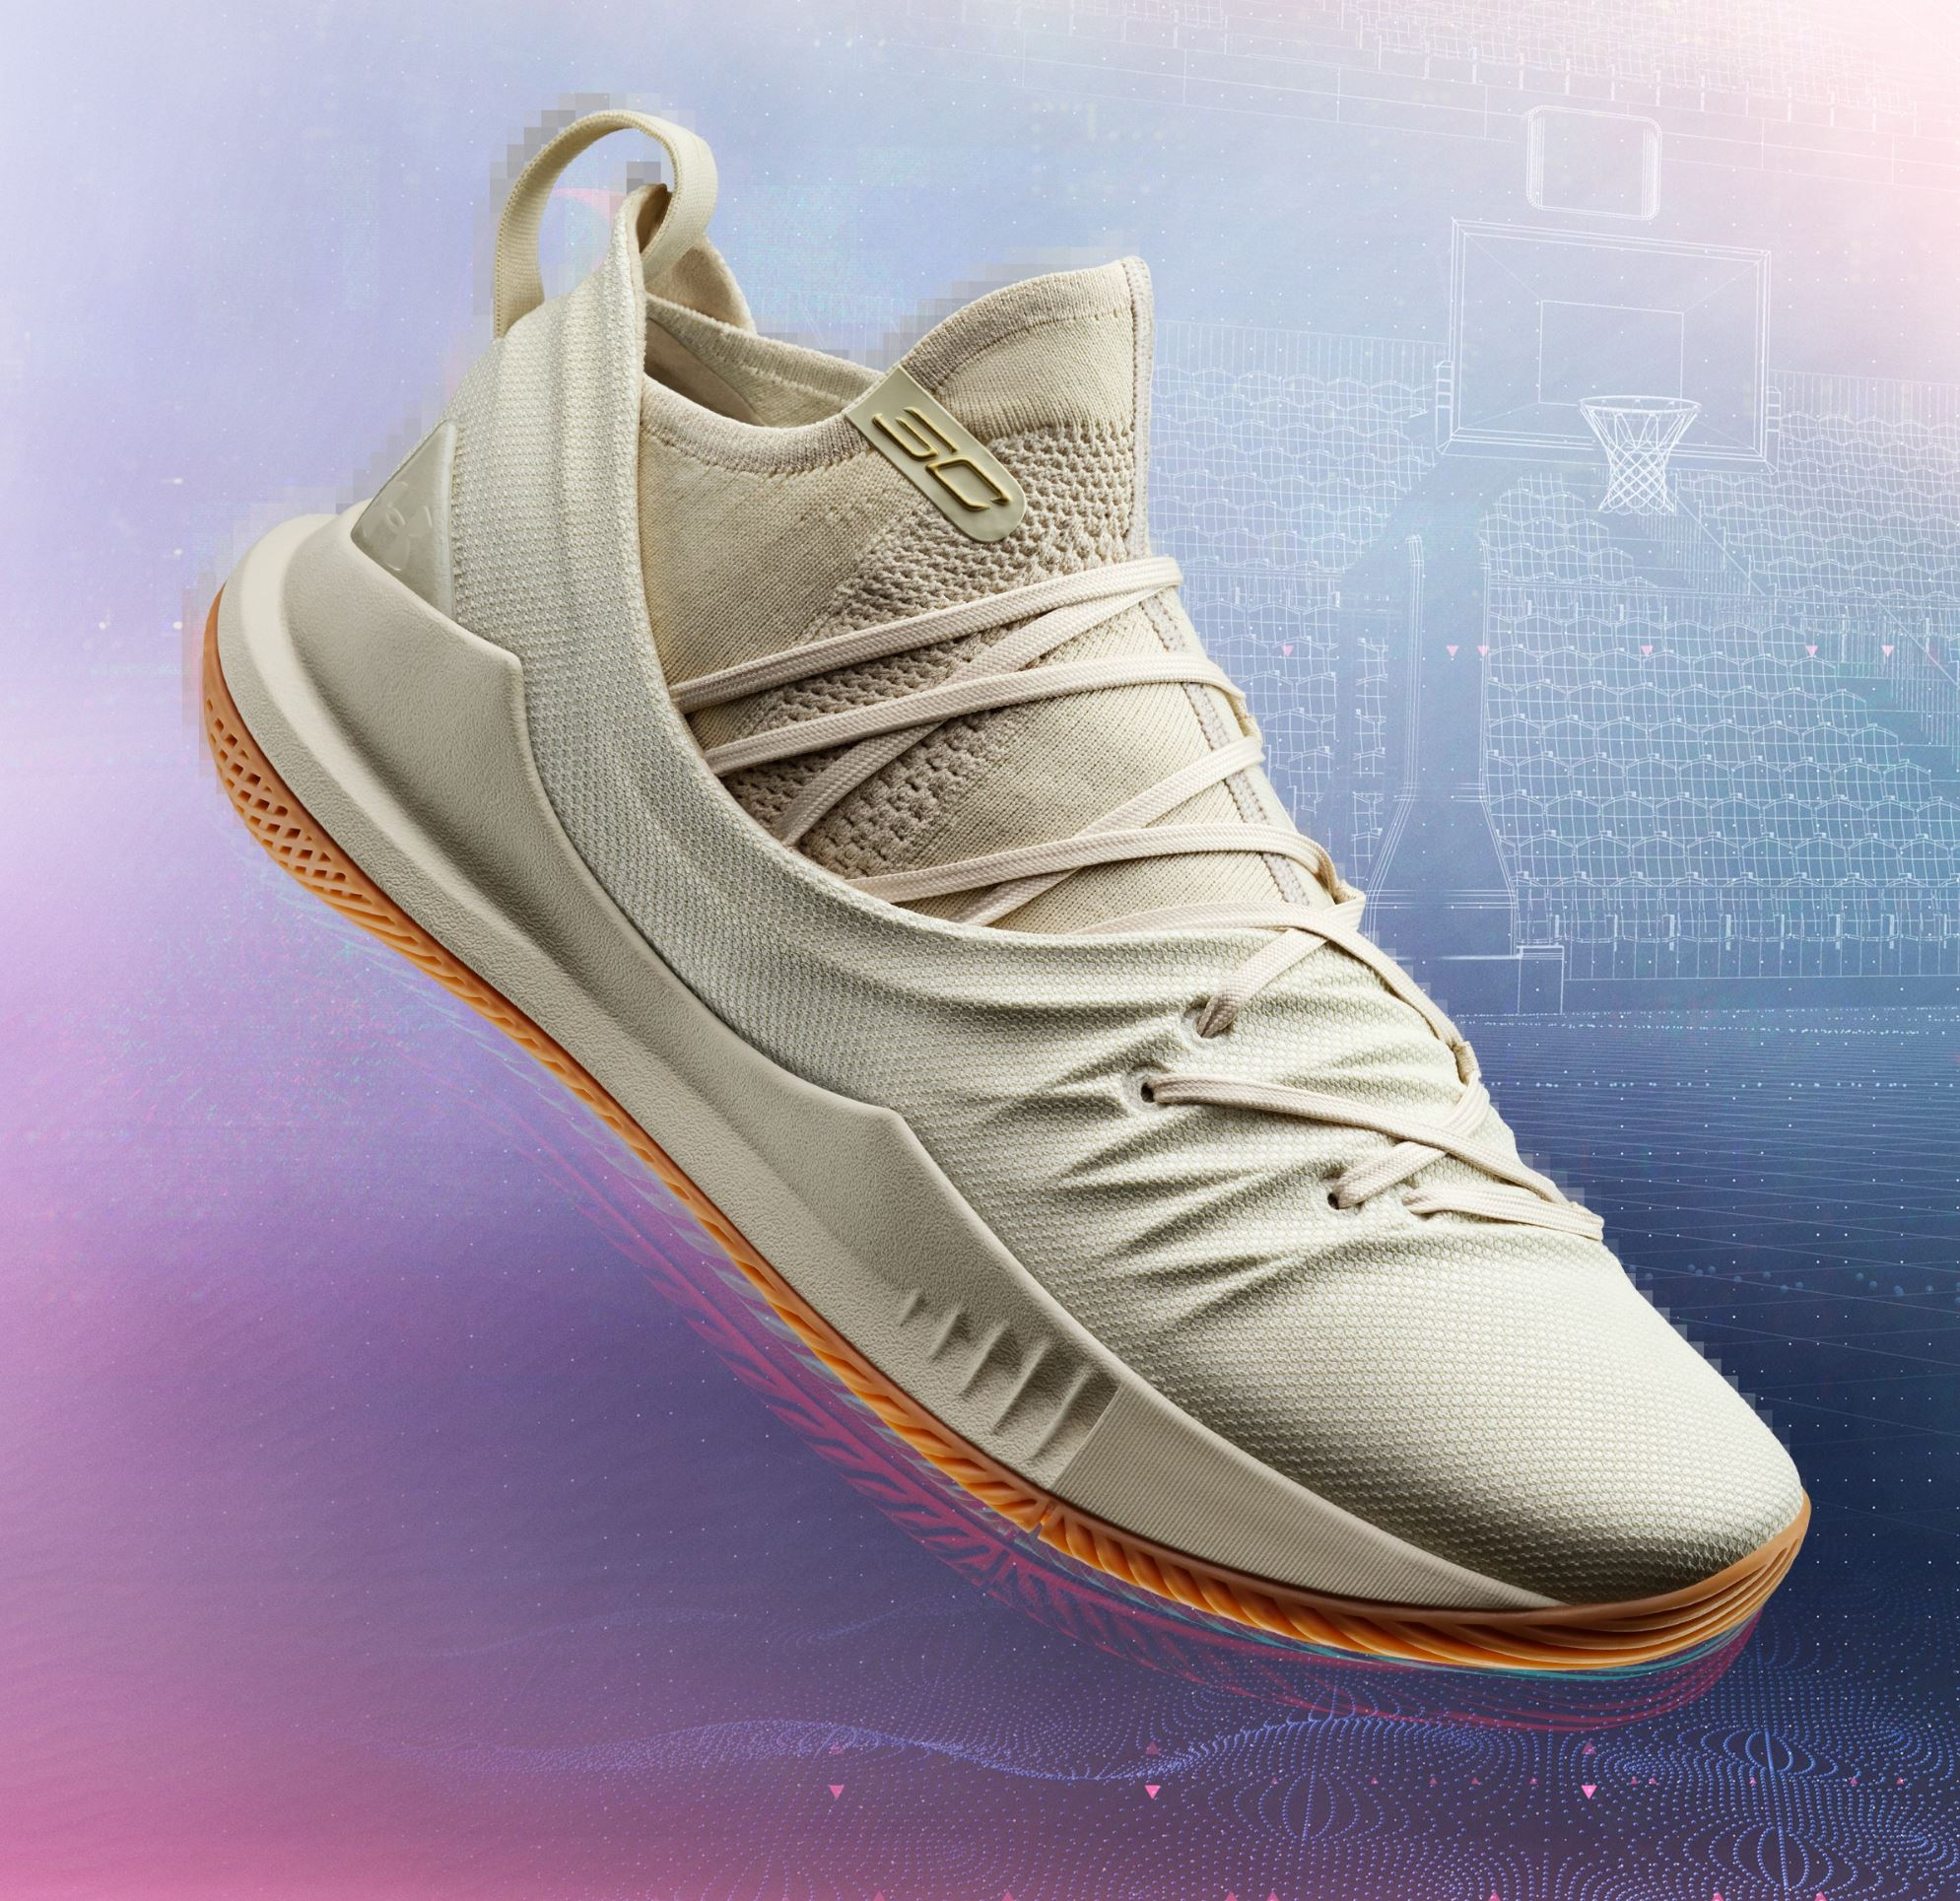 Under Armour Curry 5 The Curry 5 'Tan' Drops Friday to Kick Off the 2018 Stephen Curry ...